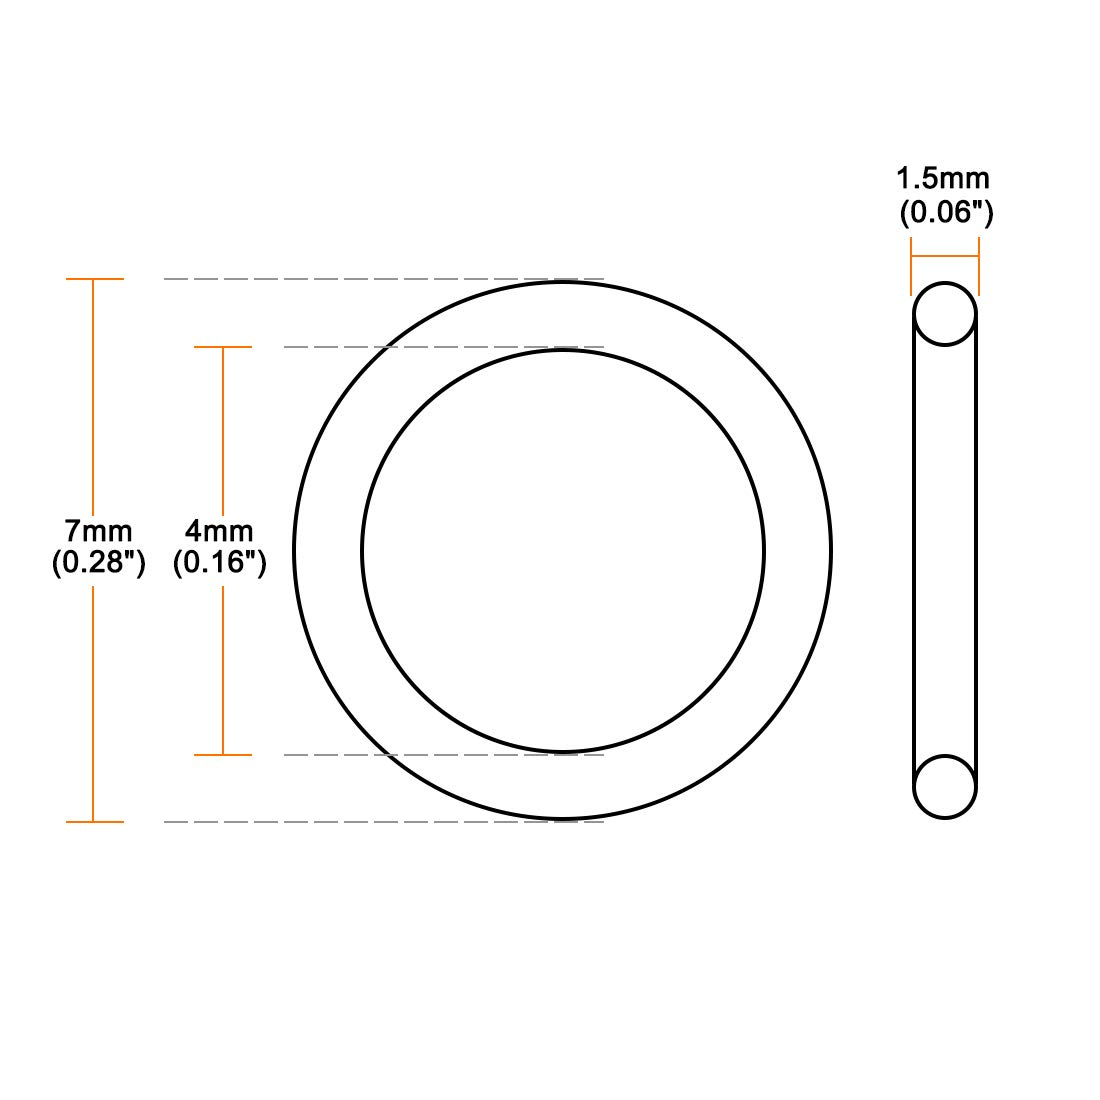 1mm ID VMQ Seal Rings Gasket 1.5mm Width Red Pack of 50 4mm OD uxcell Silicone O-Ring